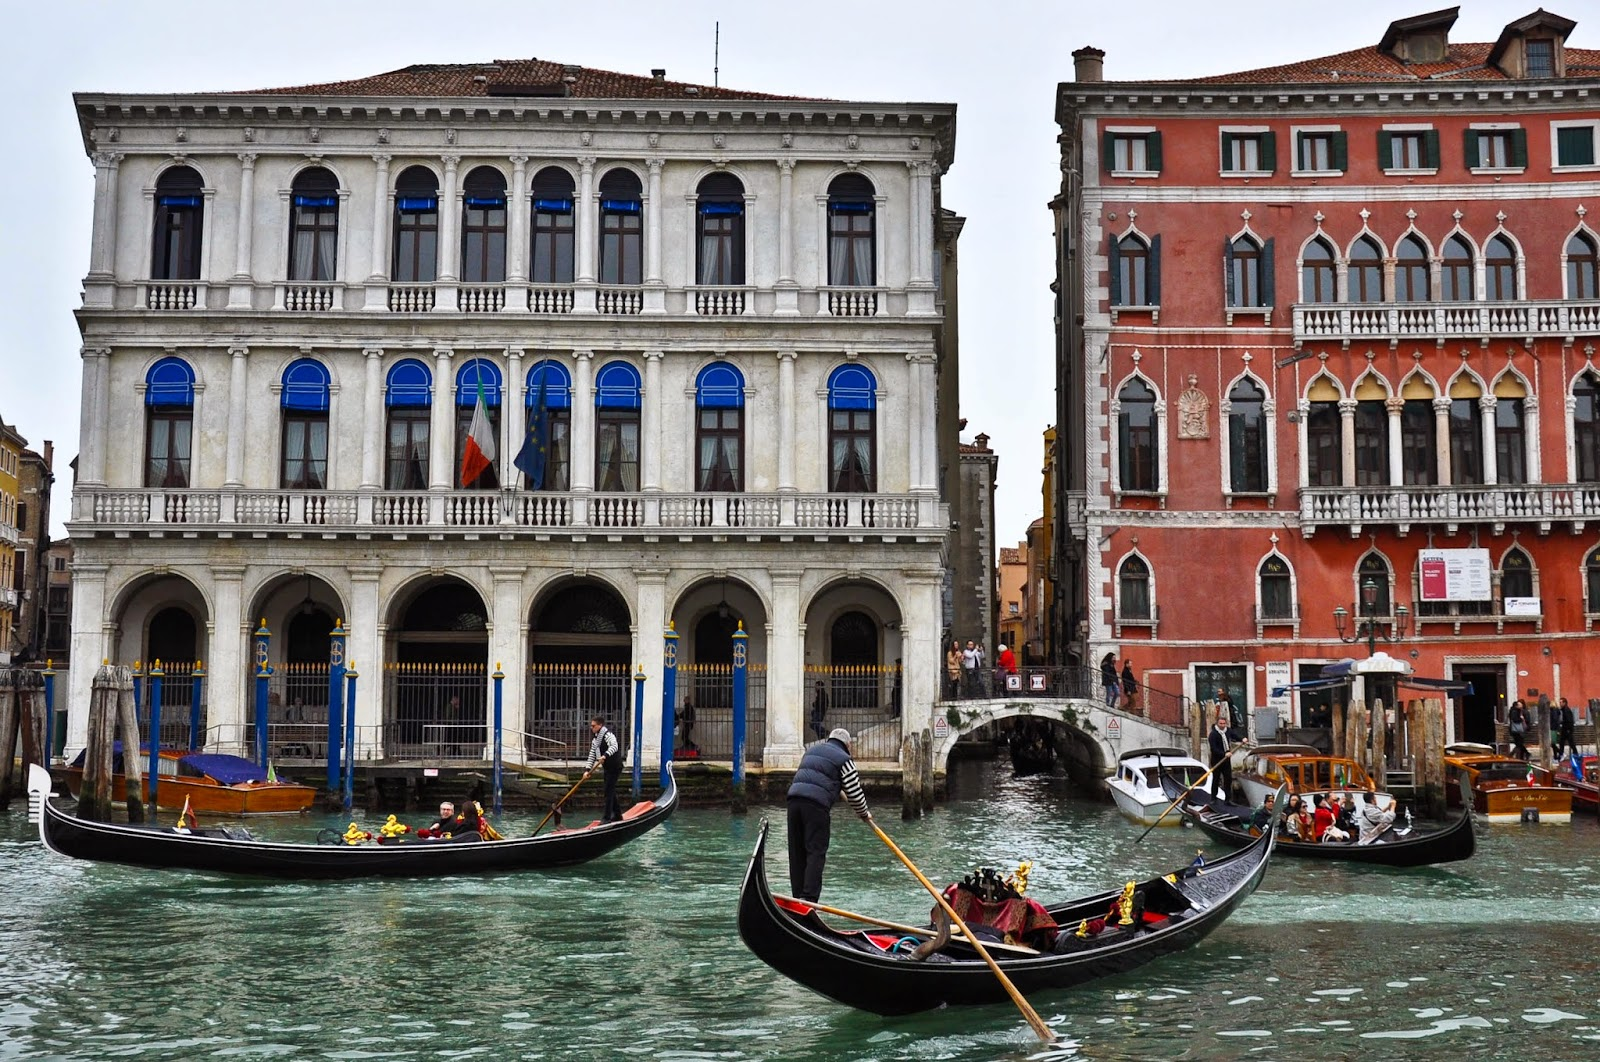 Gondola rush hour in Venice